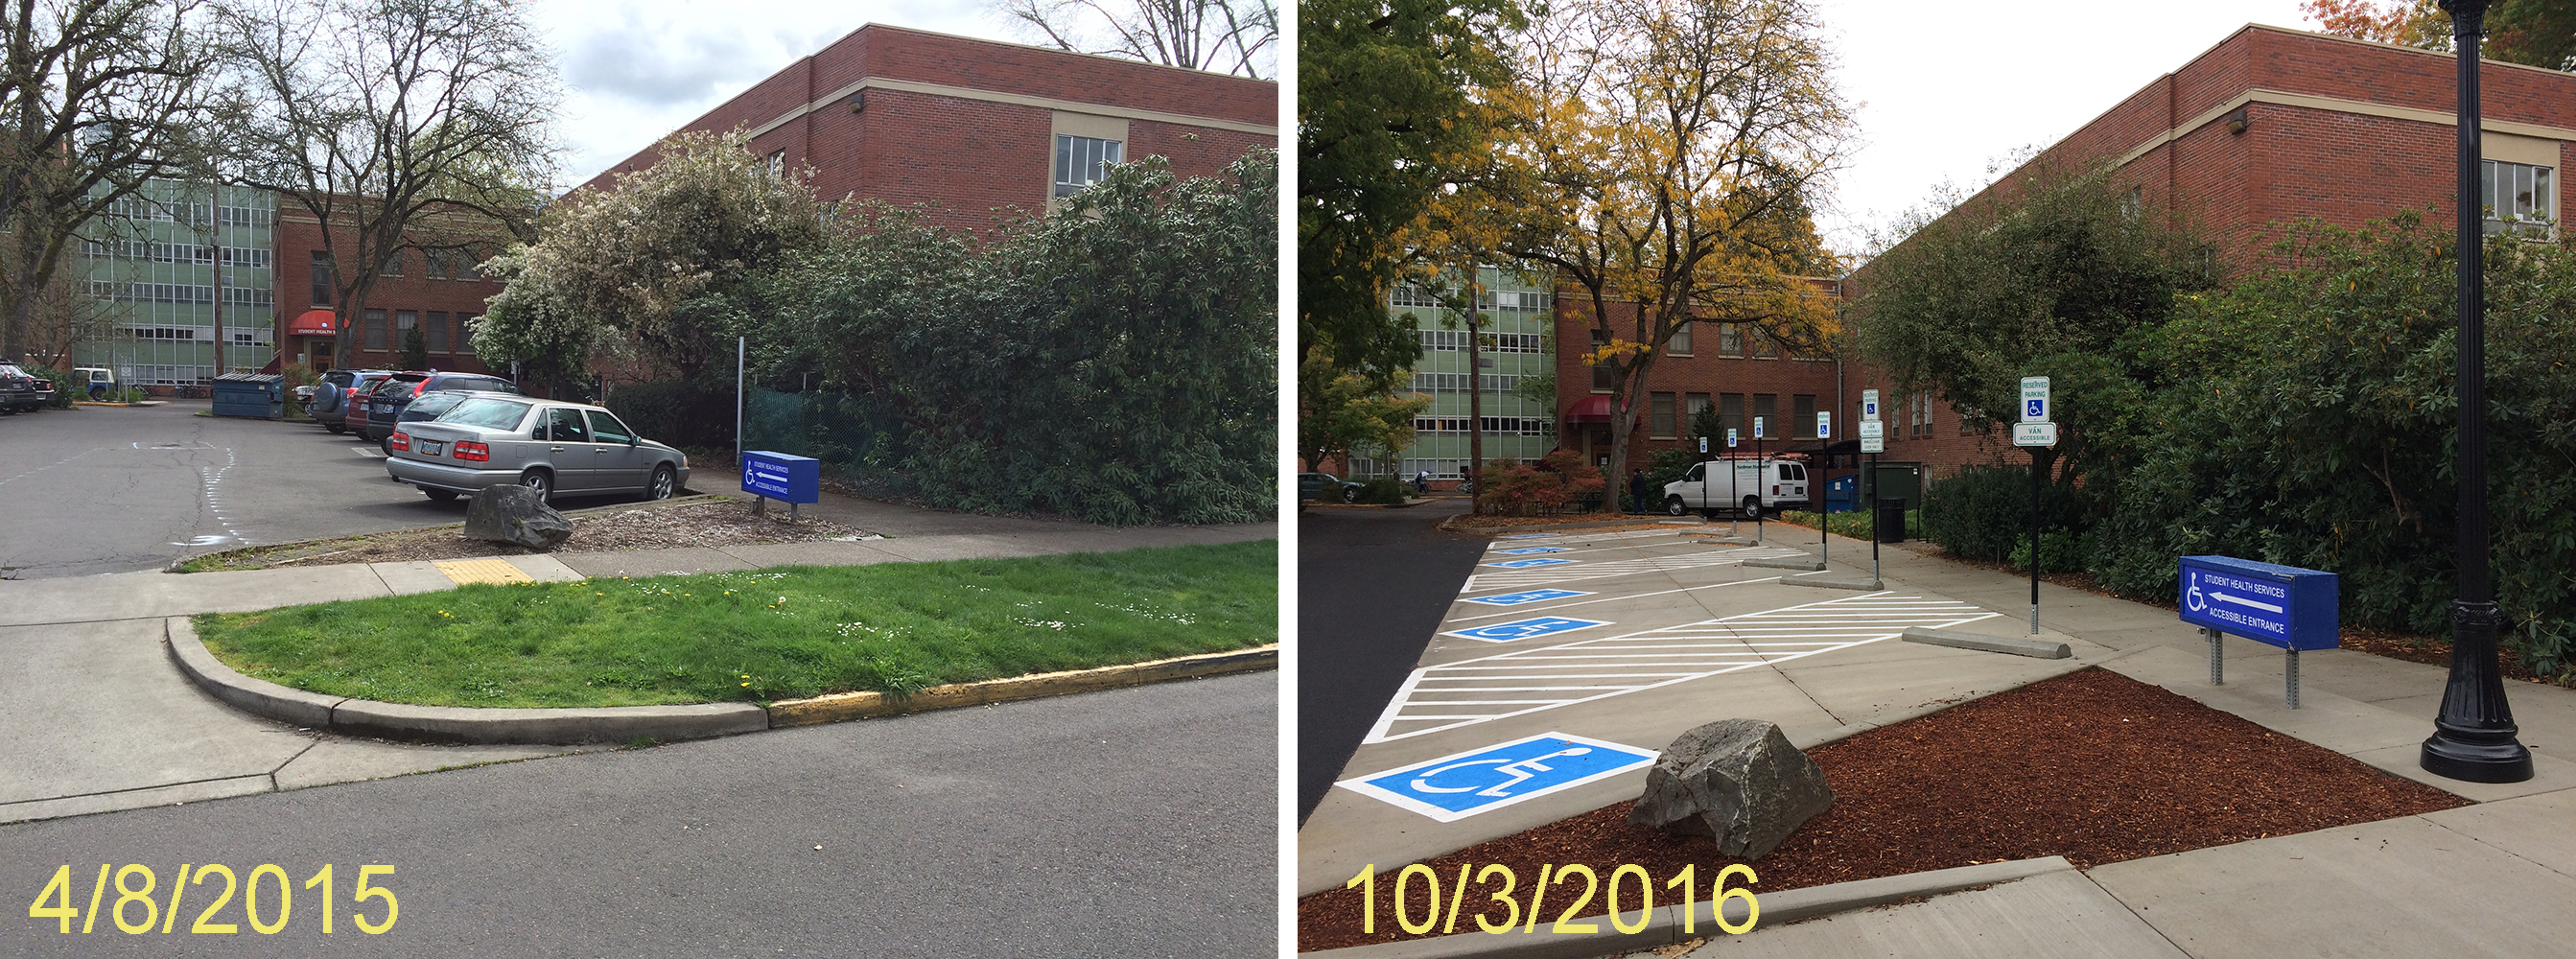 Johnson Hall Plageman parking comparison